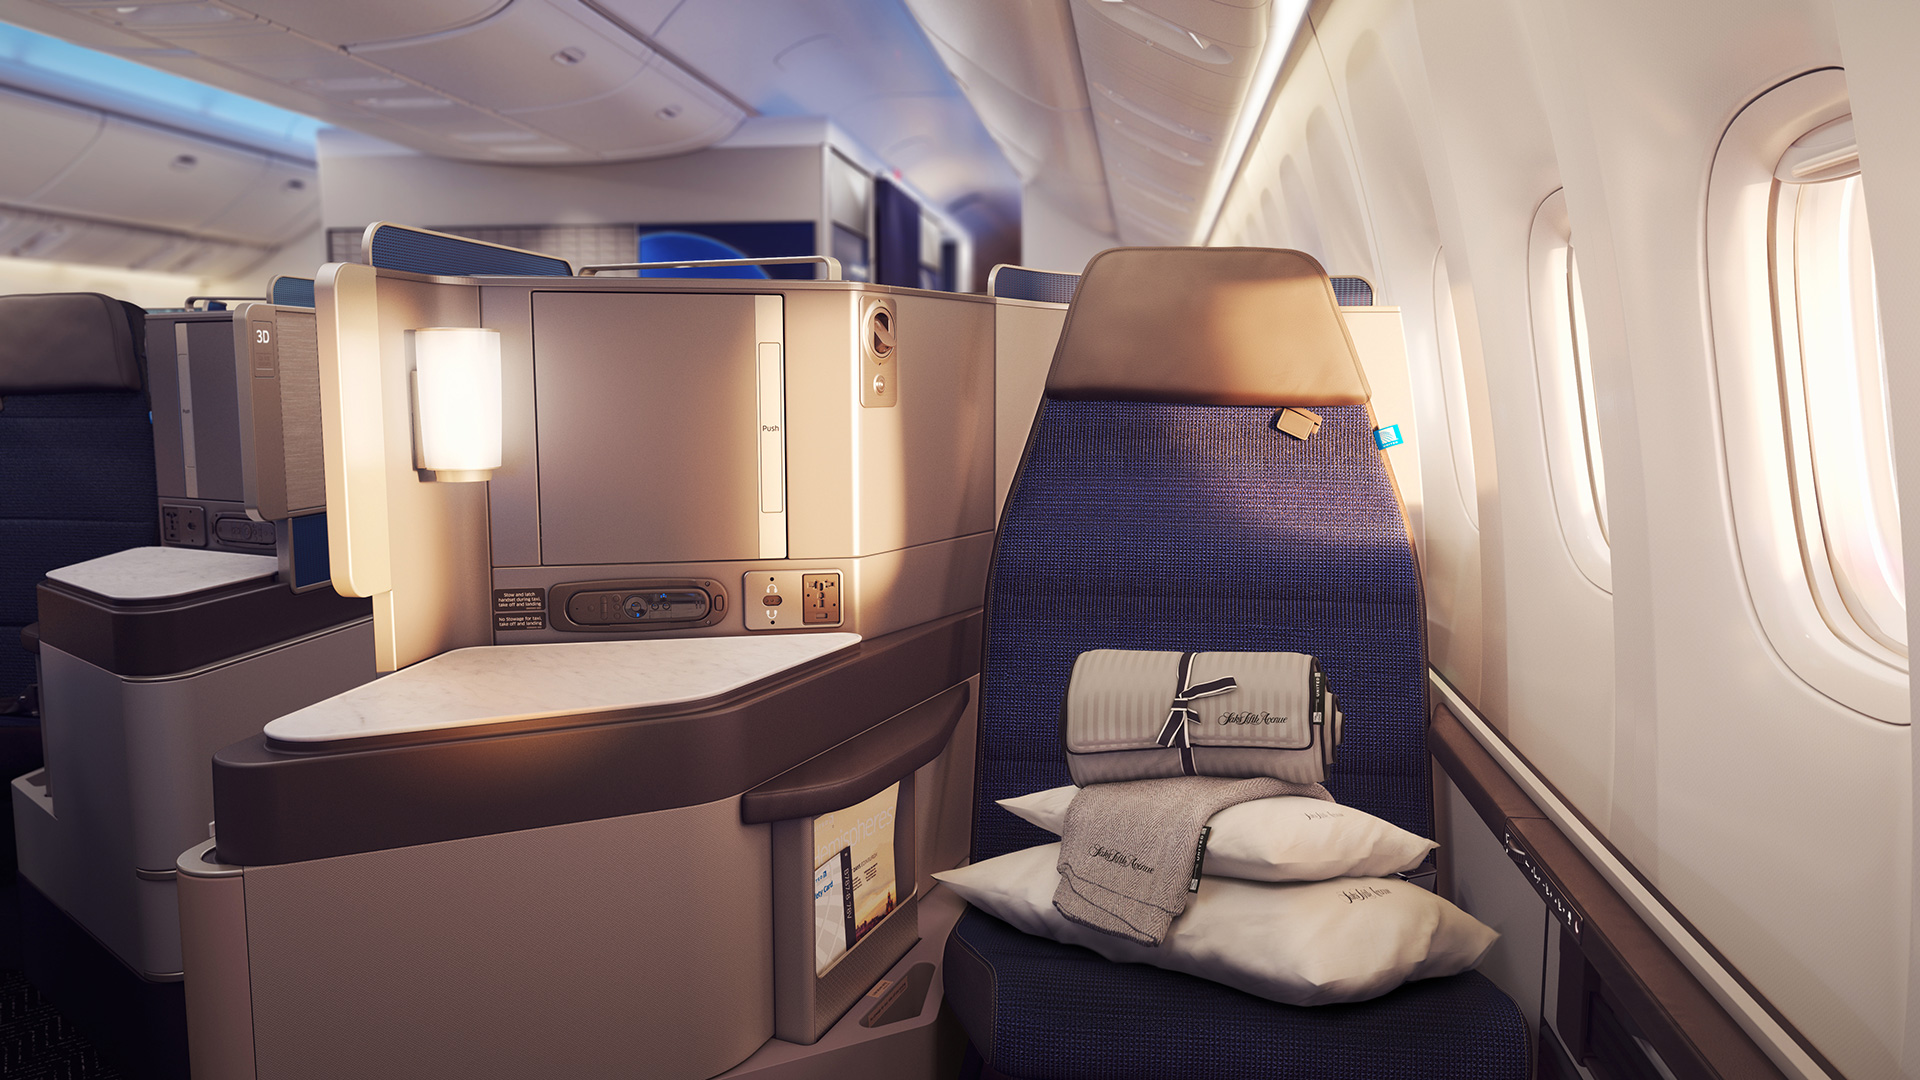 The United Polaris seat, designed by PriestmanGoode and United Airlines as part of Polaris cabin and lounge for United Airlines, offers passengers more lighting control and an additional signature reading light | Paul Priestman | PriestmanGoode | STIRworld